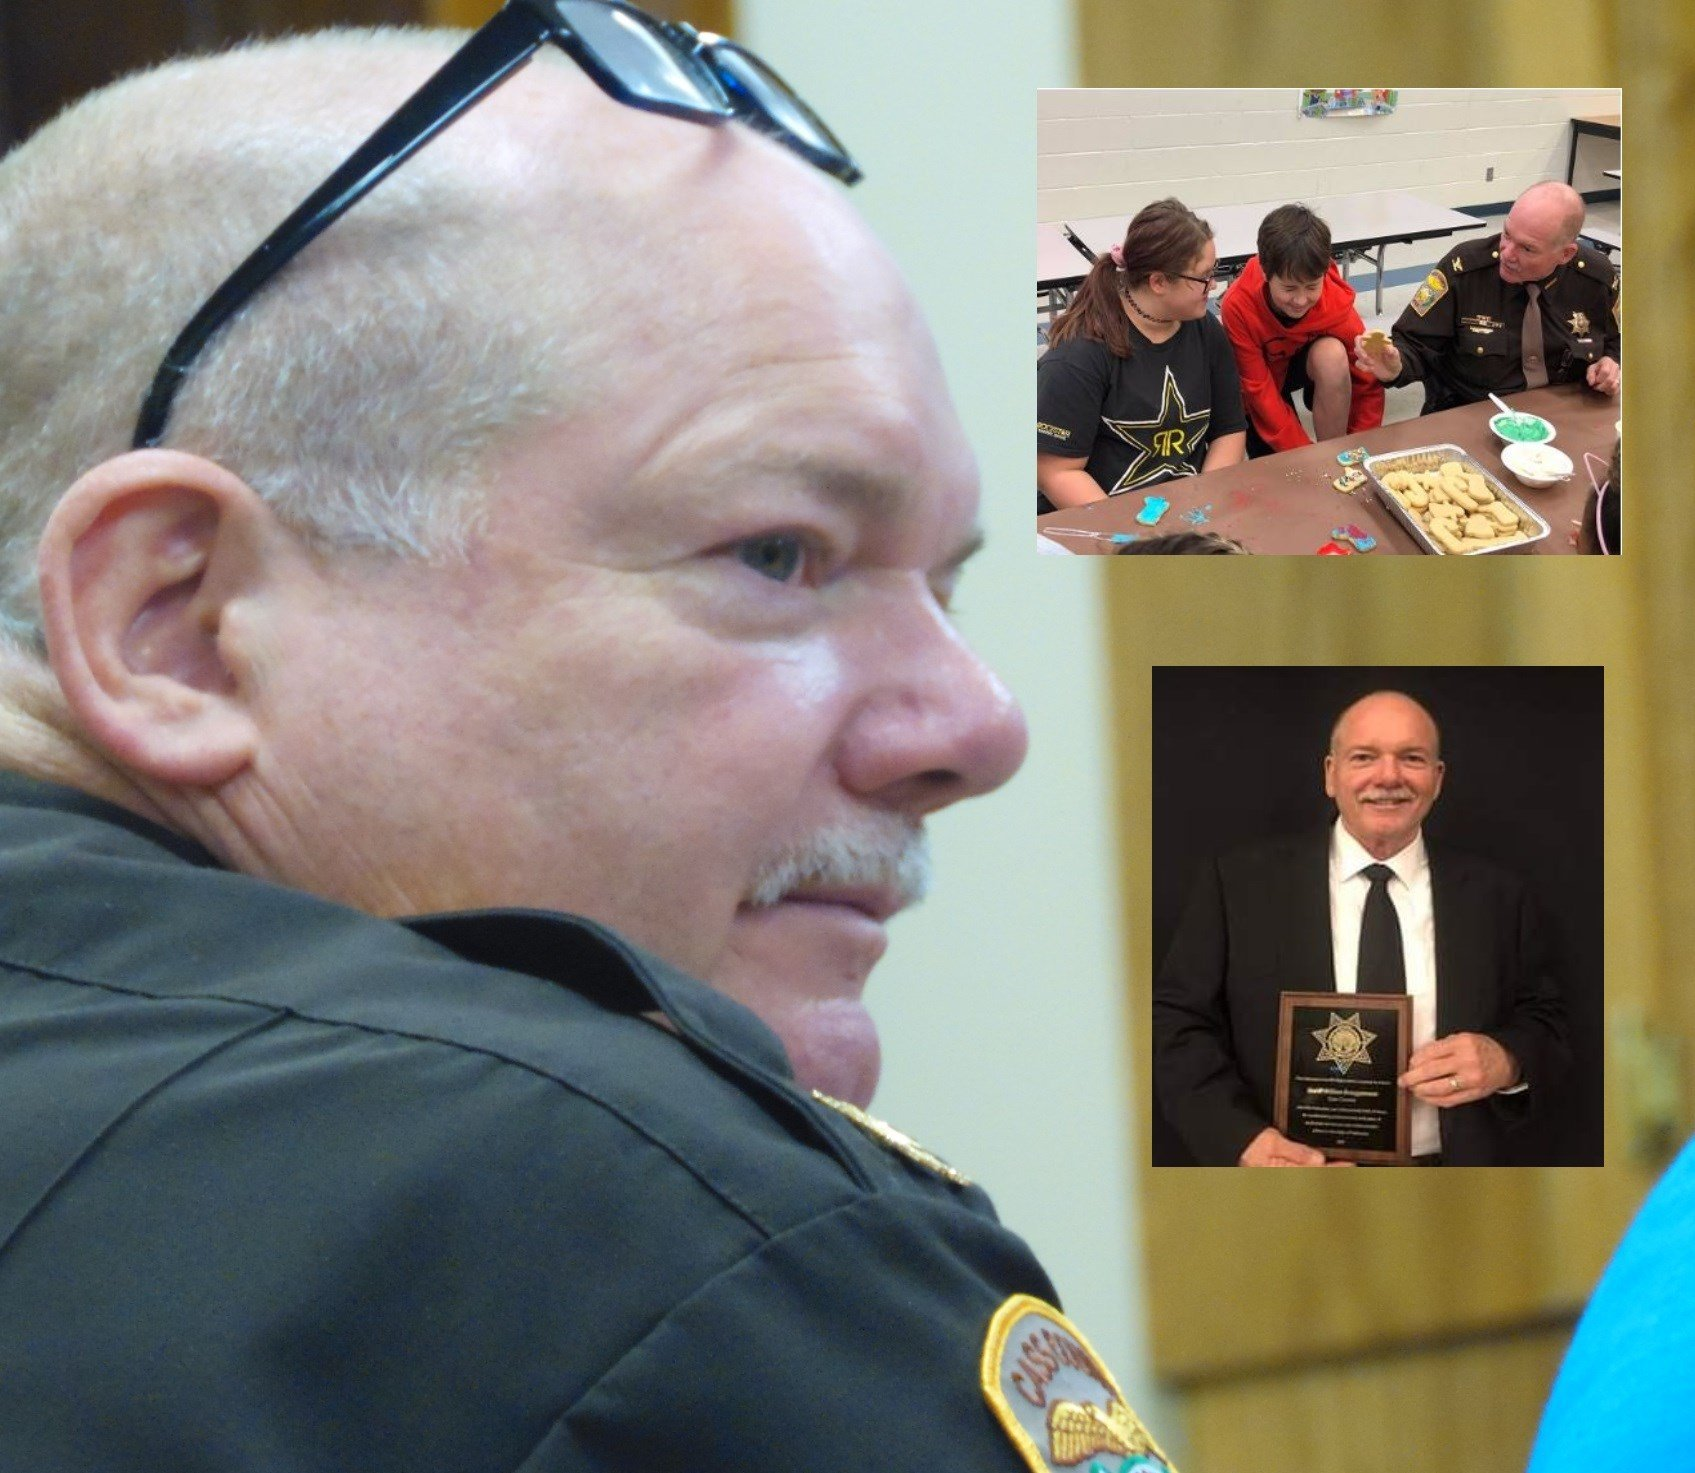 Hall of Fame sheriff does not plan to seek re-election